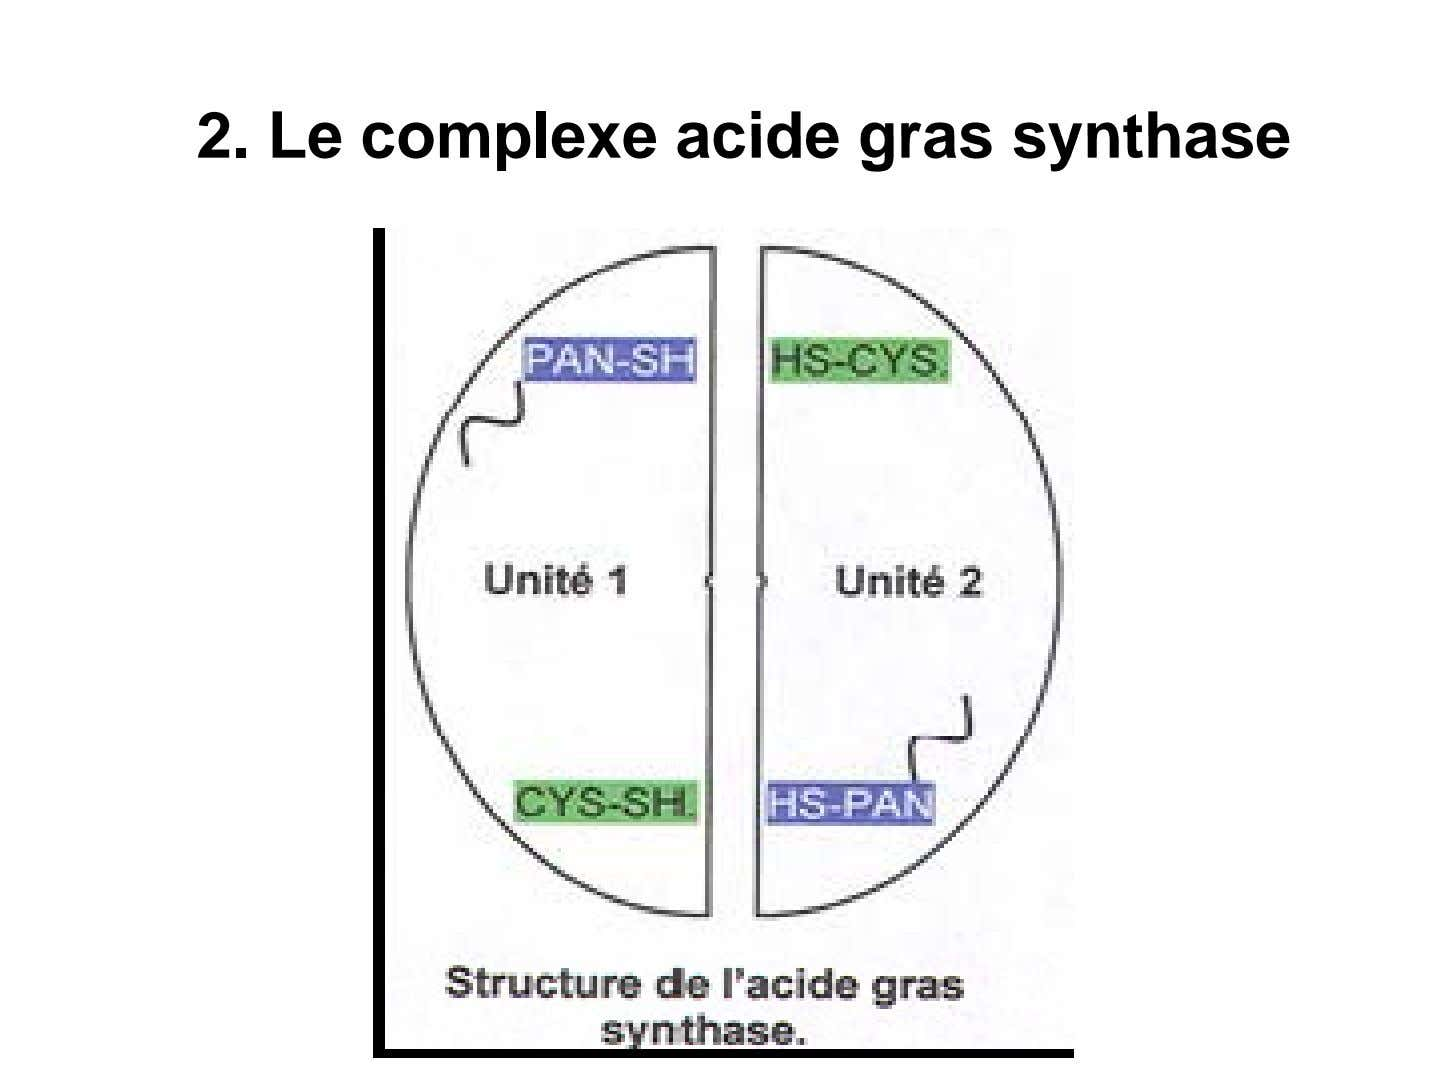 2. Le complexe acide gras synthase